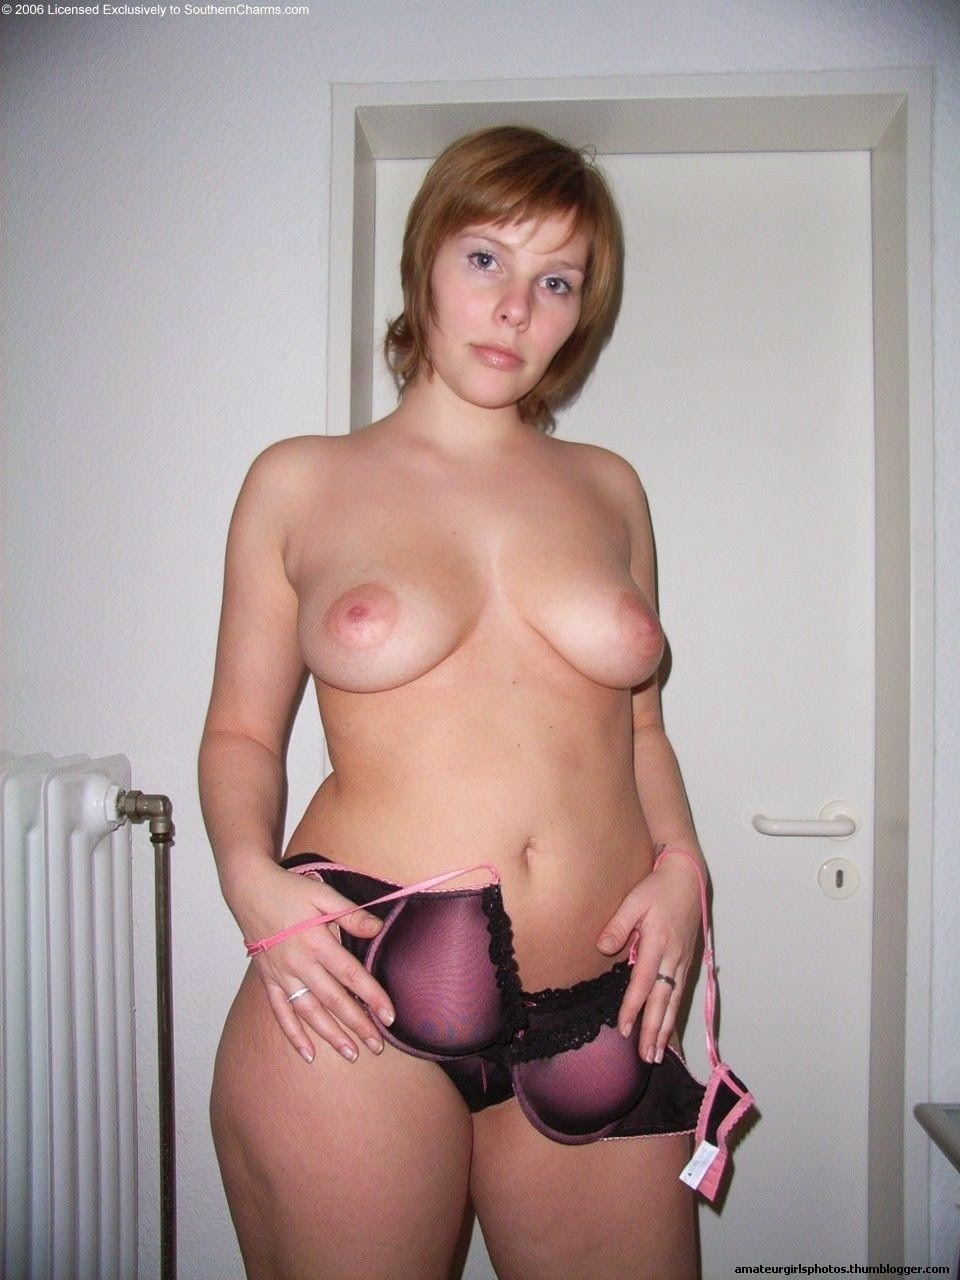 Strap big fat southern girls naked bodystockings.Love this